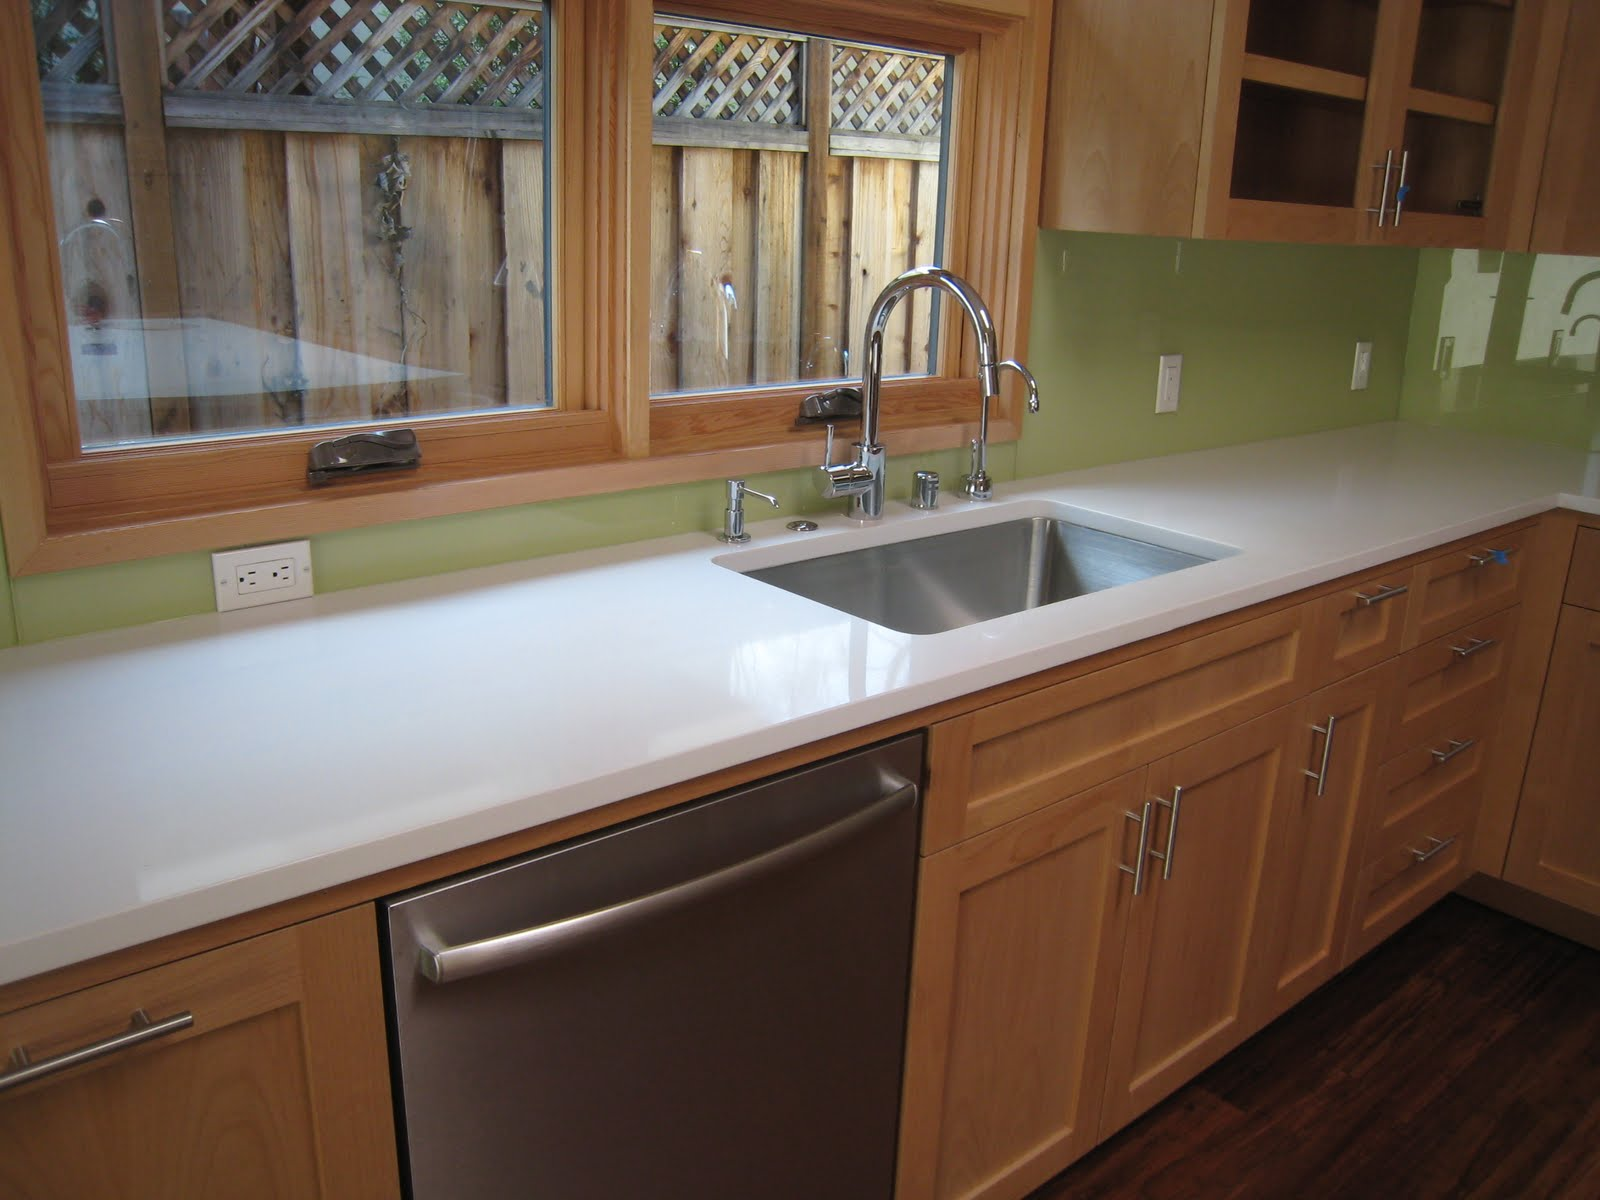 we went for a solid glass backsplash for a clean look as well as easy